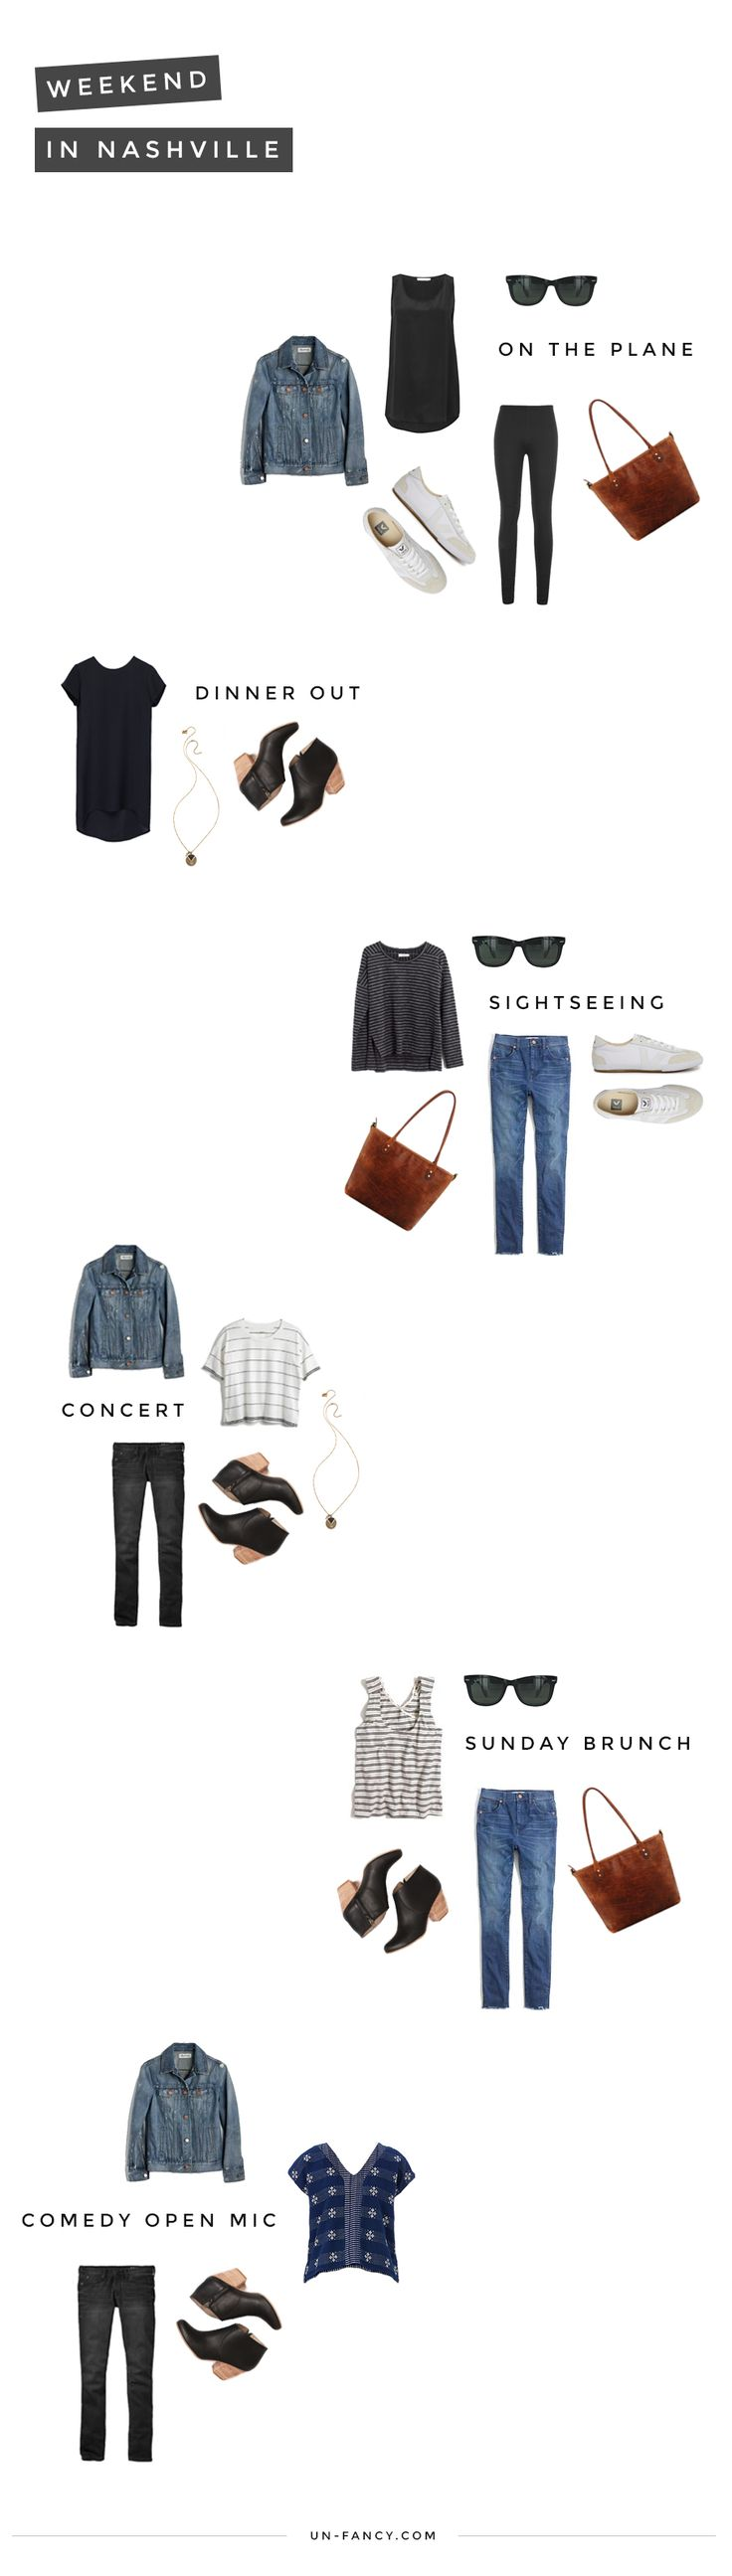 nashville: a weekend of outfits   a packing list                                                                                                                                                                                 More